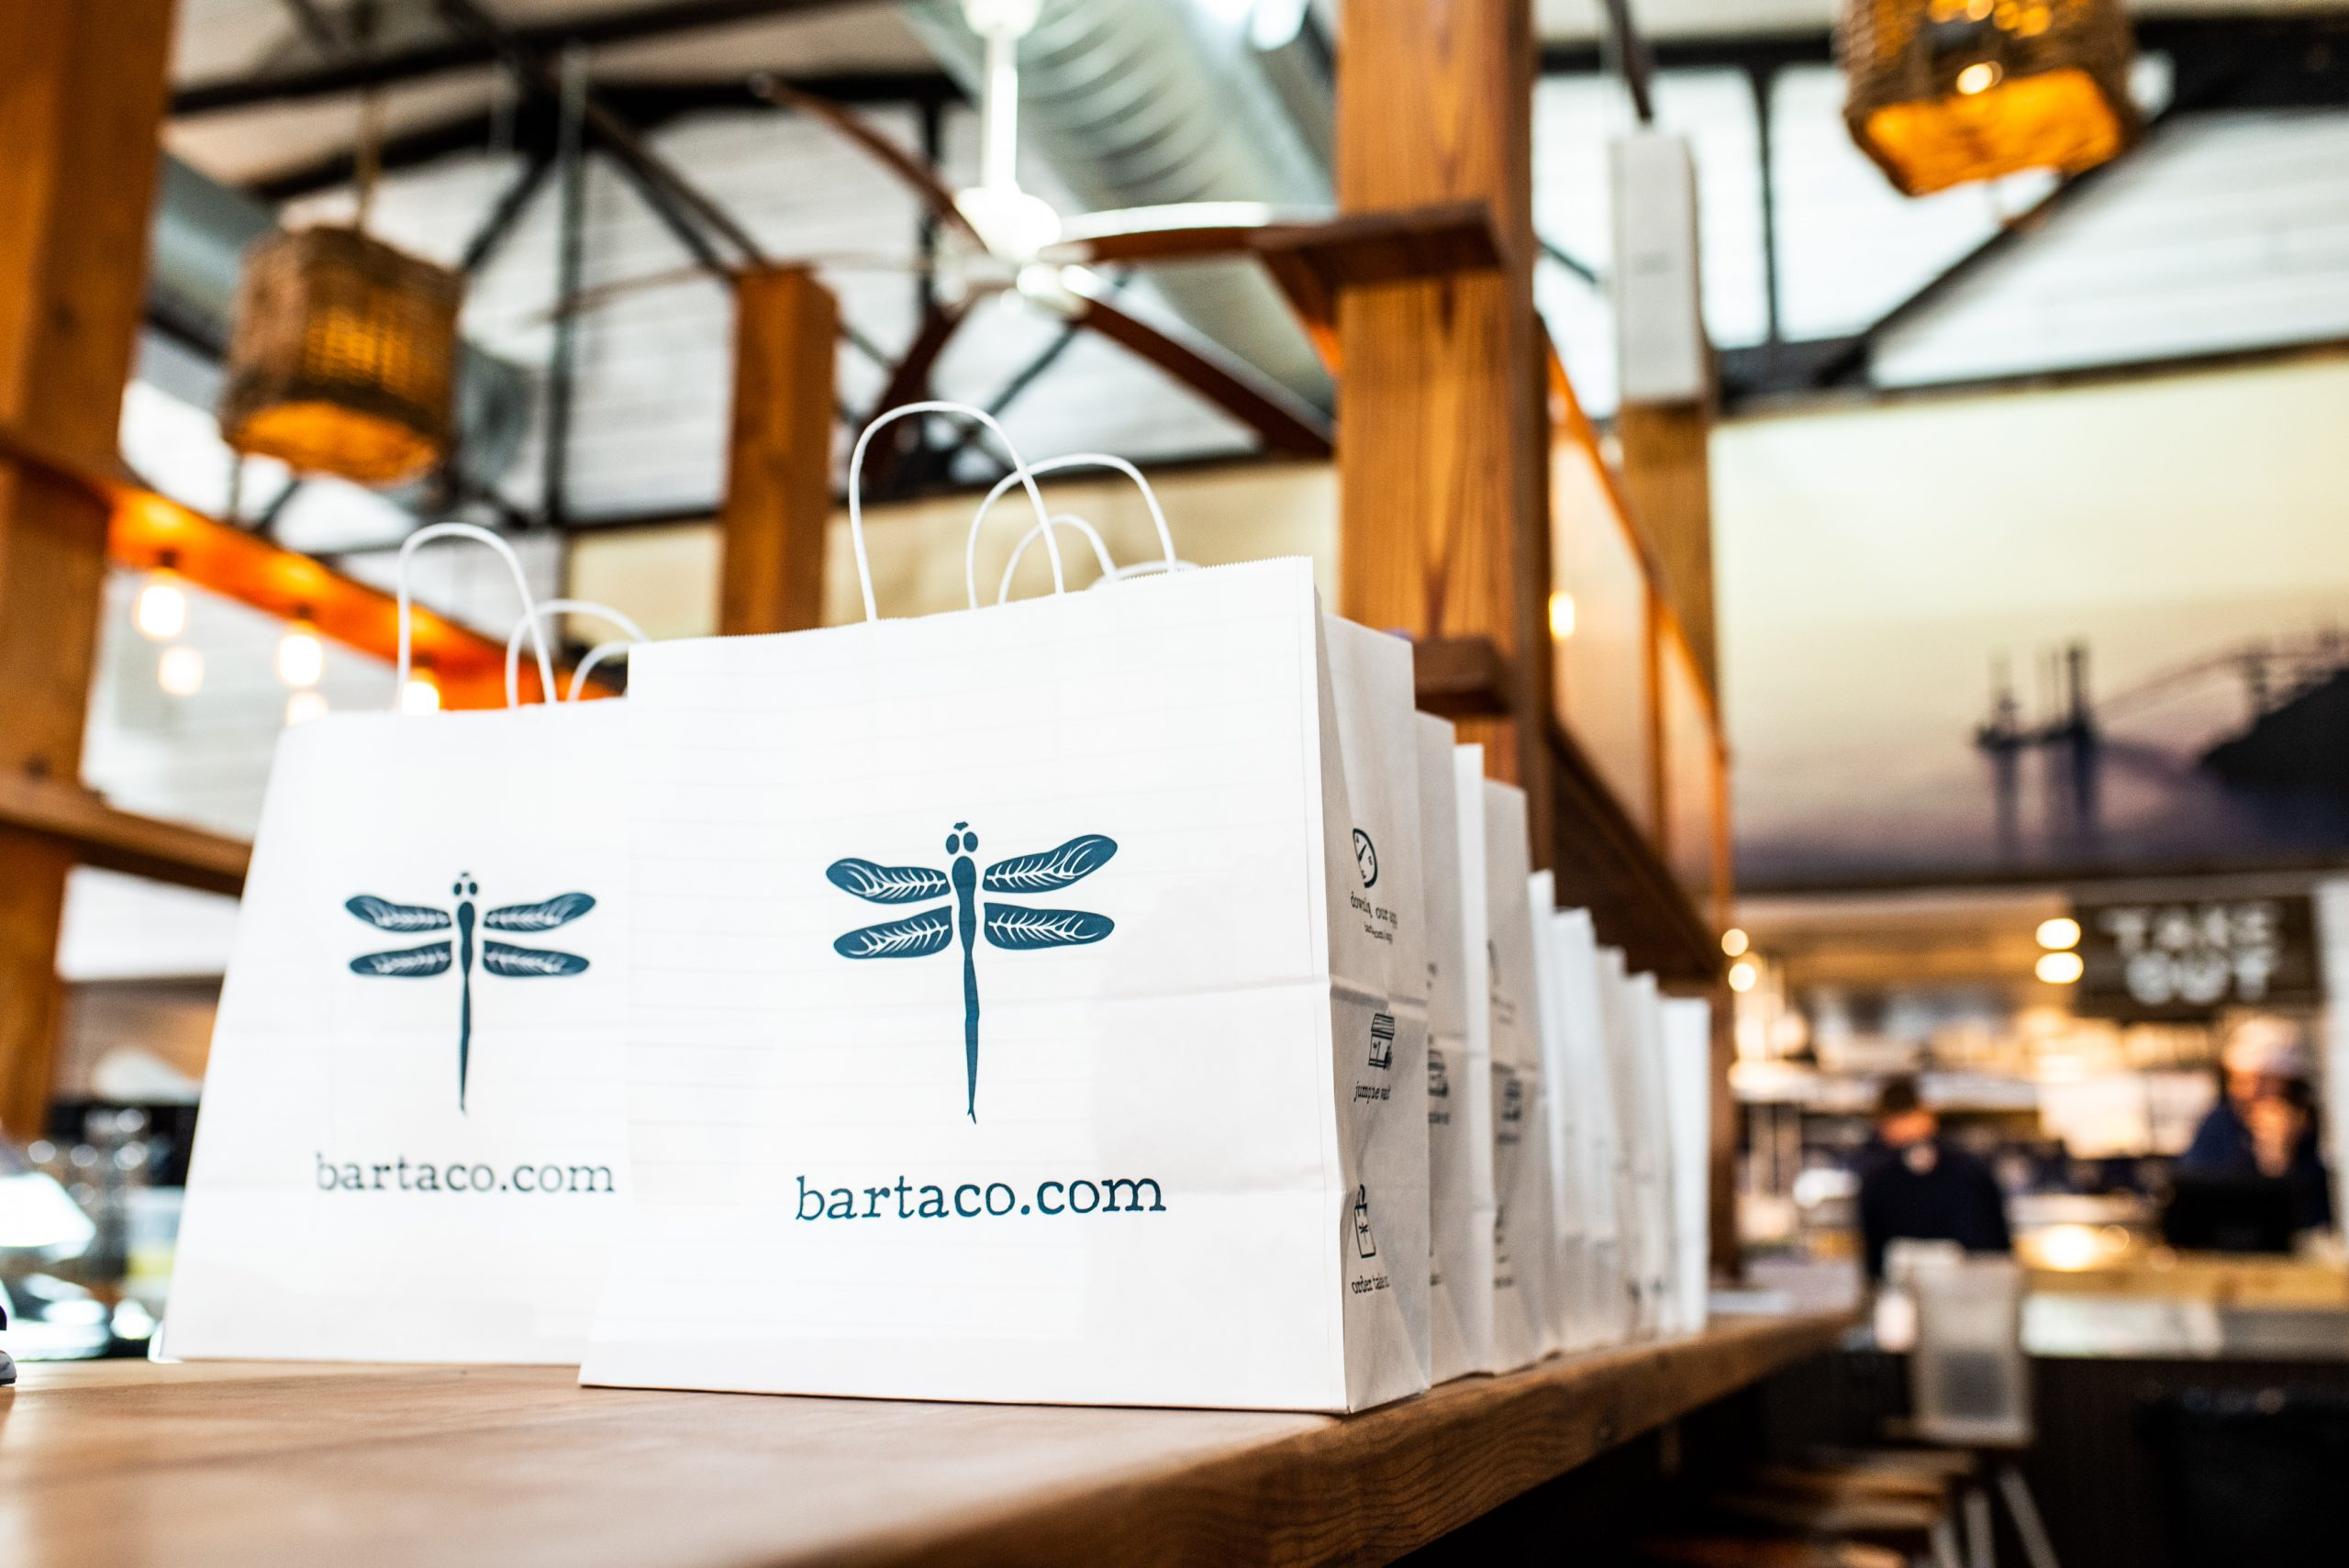 bartaco is now available for delivery in New Haven. From our signature guac + salsa + chips to a variety of scratch-made tacos [for meat lovers + veggie lovers alike], to flavorful sides plus kids' meals and desserts, our menu is full of bold flavors everyone will love. Order now on Uber Eats or DoorDash and enjoy #bartacoathome.